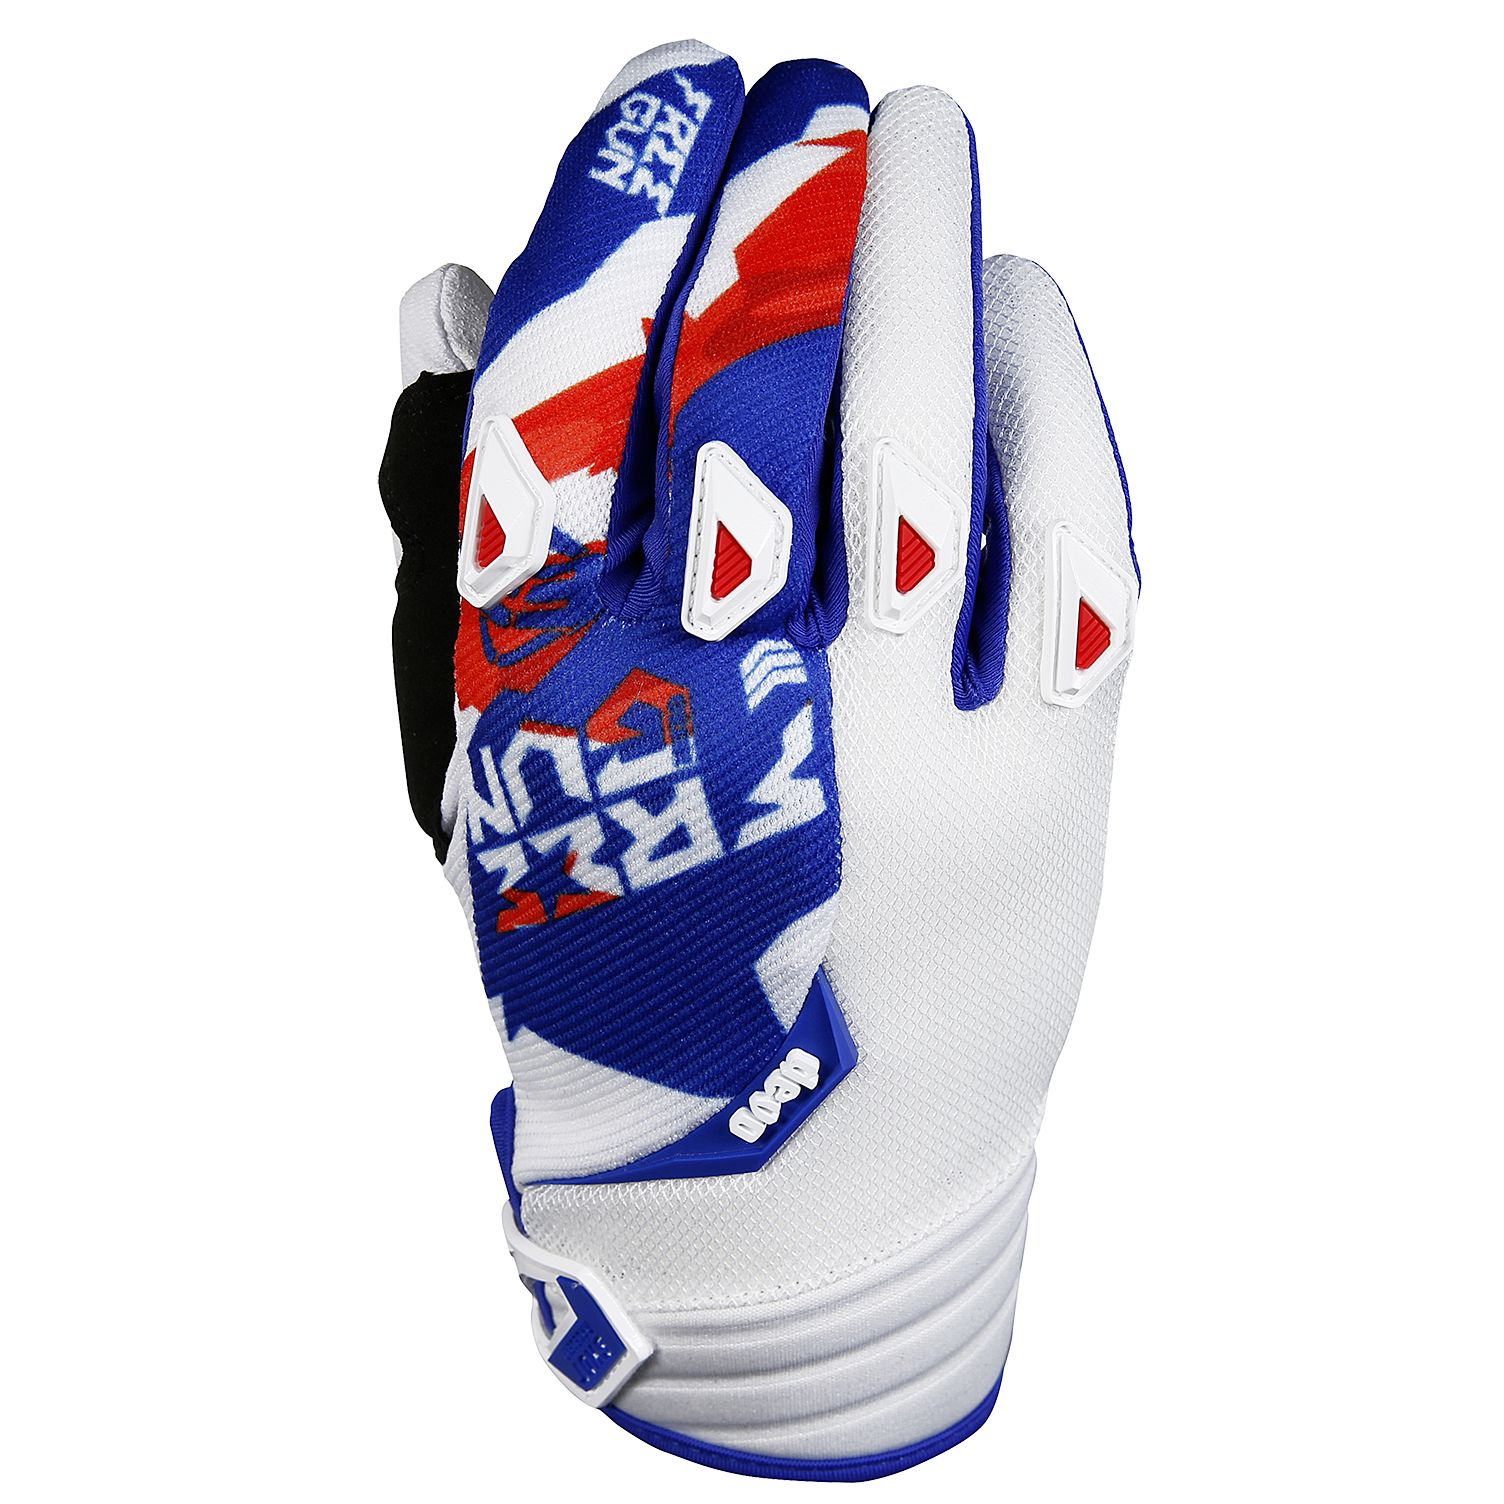 Gants cross Shot destockage DEVO HONOR BLEU ROUGE  2017